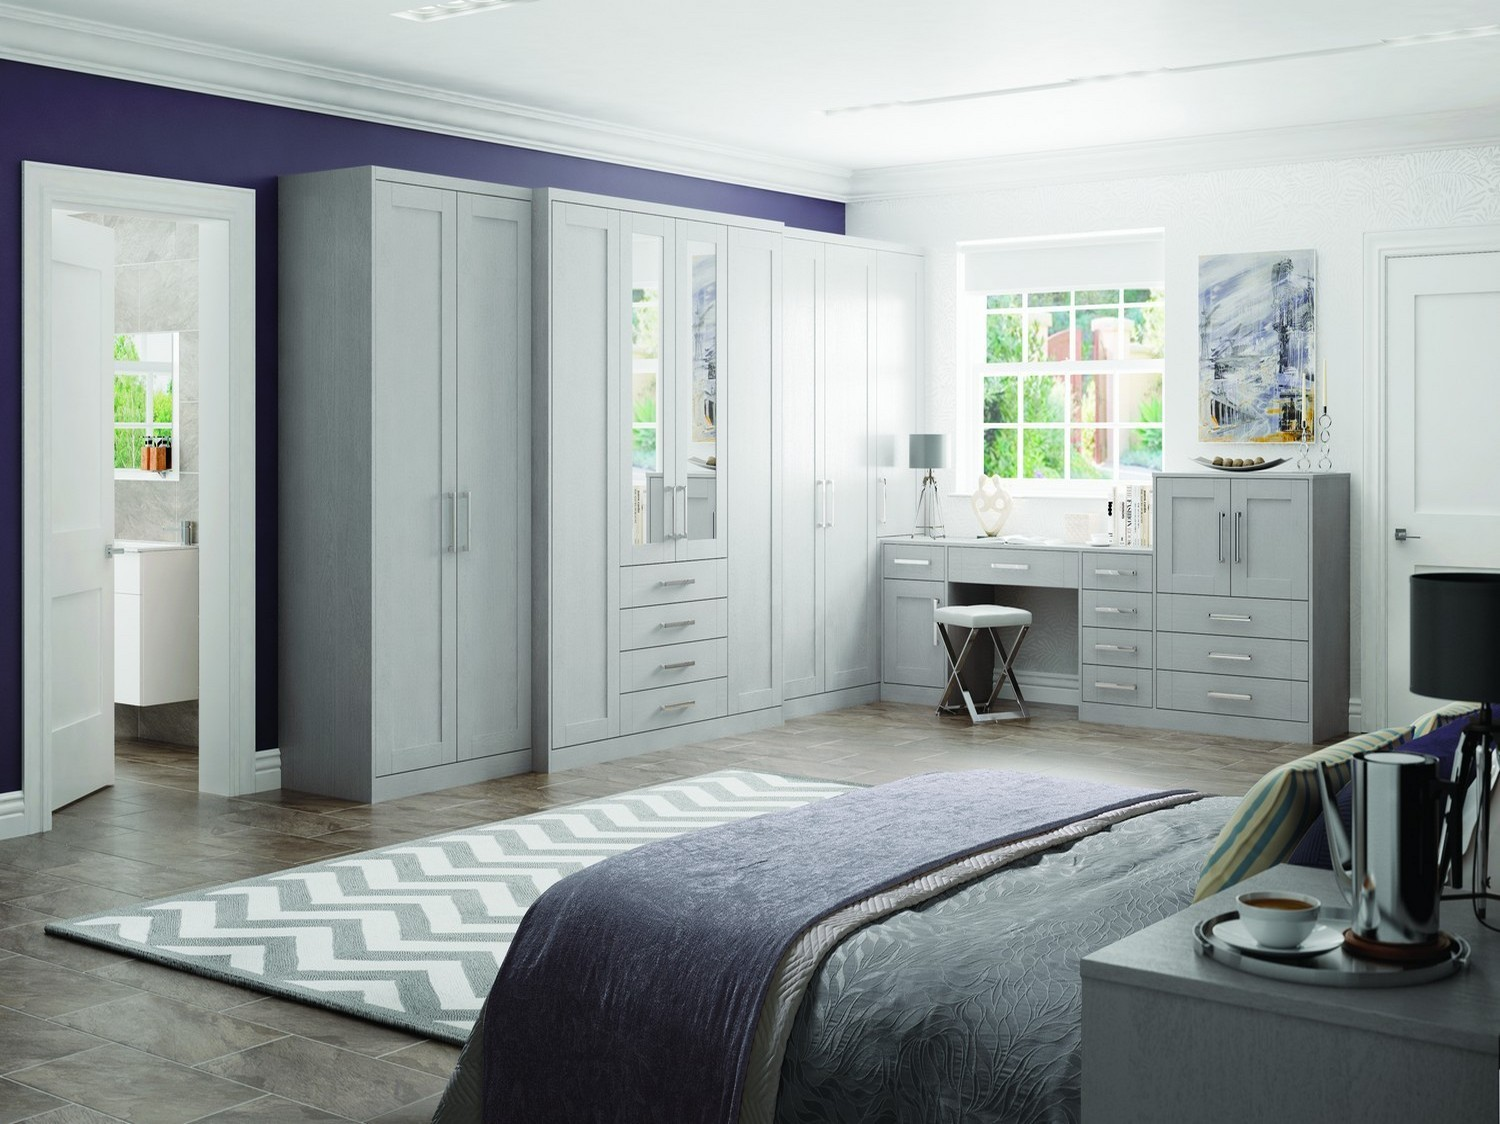 Larger built in bedroom furniture set finished in light grey with feature mirrors and mirror handles. The bedroom set features a range of wardrobes connected to a dressing table and storage draws. This bedroom furniture has been designed for a bedroom remodel in Maghull.